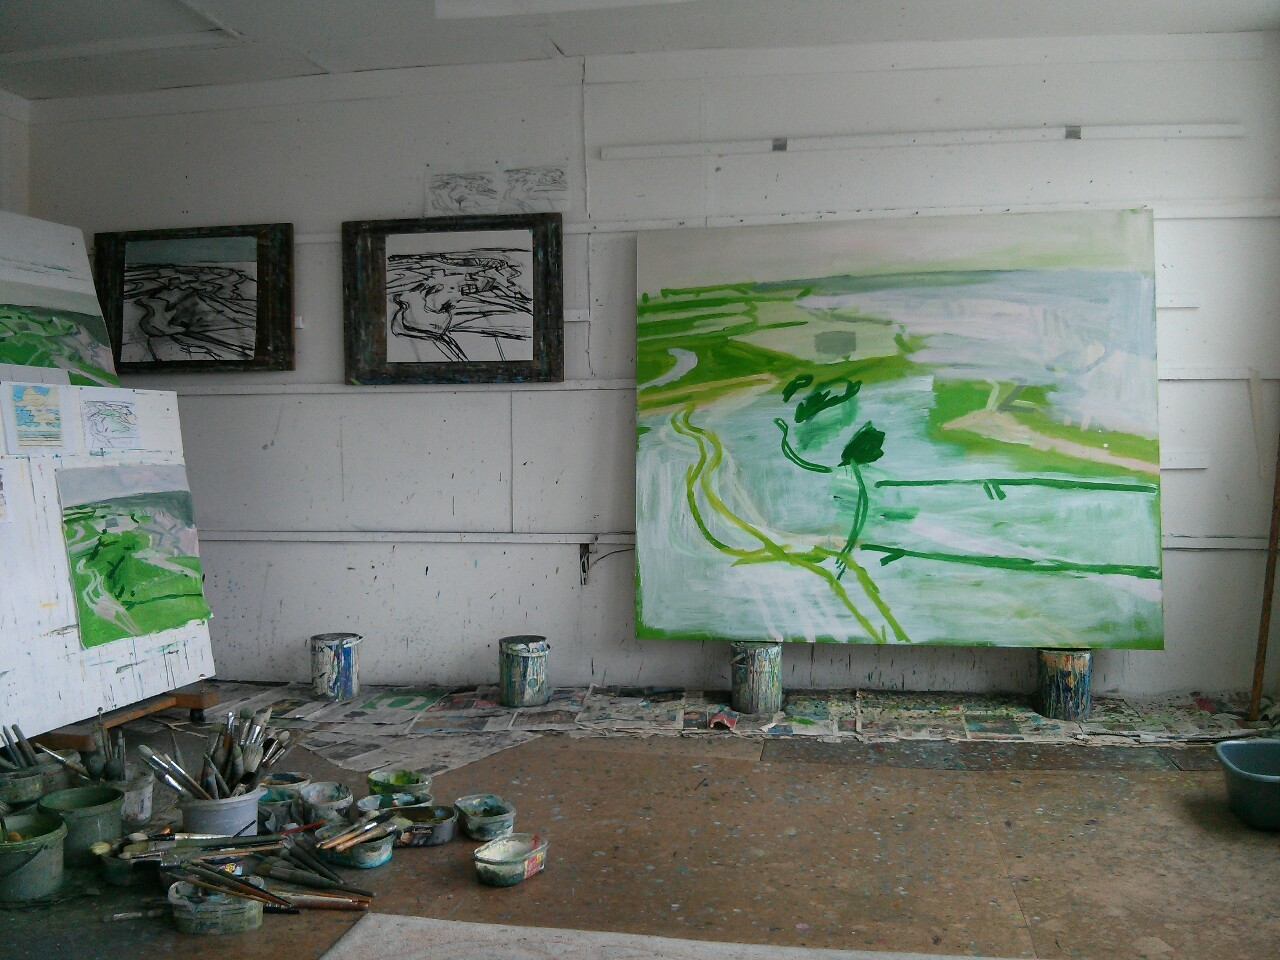 I was out again this morning making some drawings looking out over the seawalls and marshes. I've started another charcoal drawing in the studio and have been making alterations to the canvas, still looking for the big idea that will hold it all together. I have just mixed a jar of cool milky green with which to block in the lower half of the canvas… again.